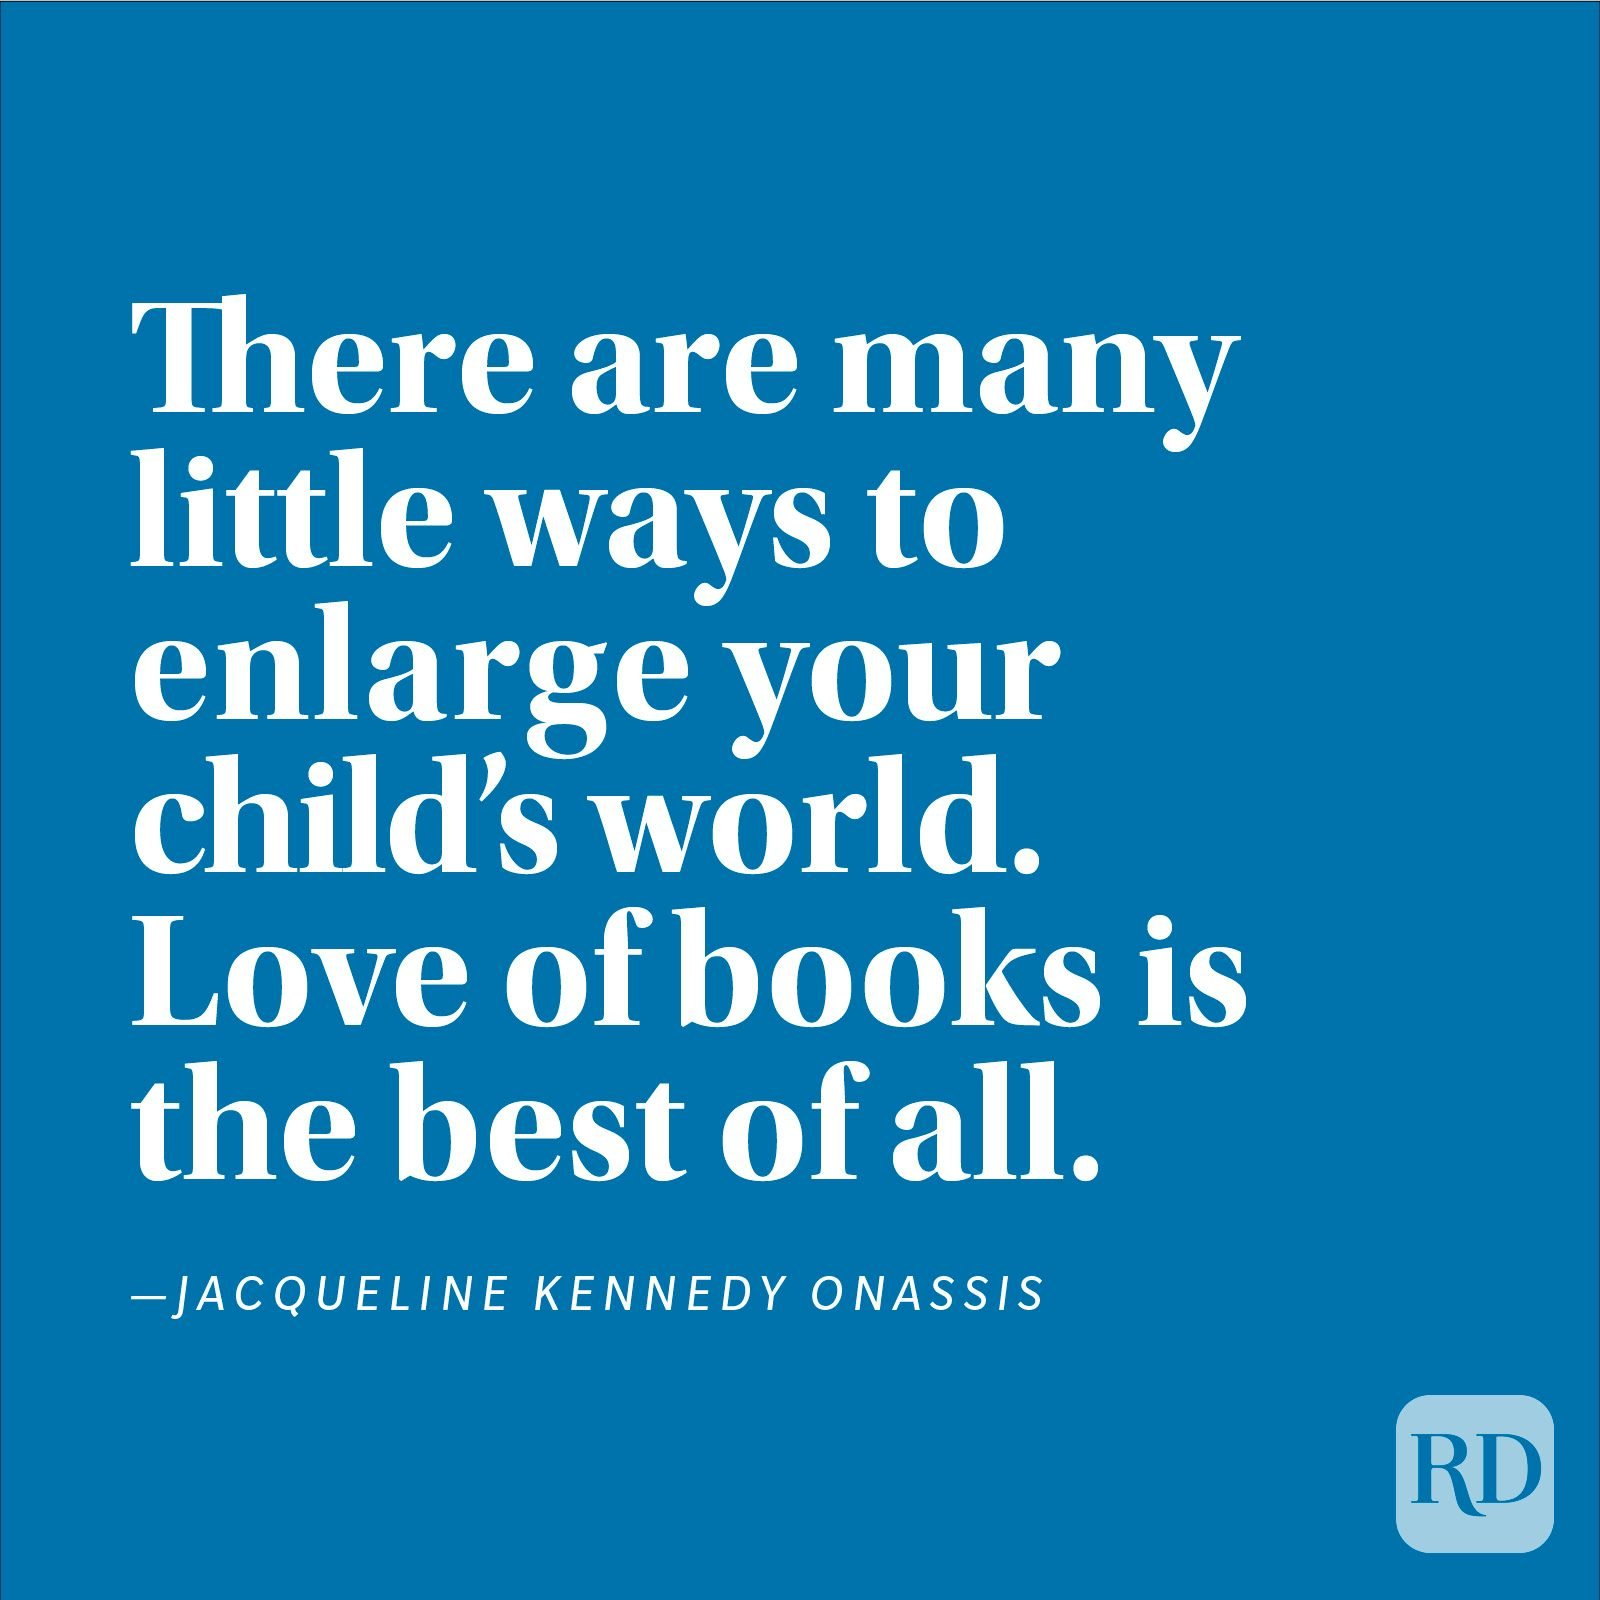 """There are many little ways to enlarge your child's world. Love of books is the best of all."" —Jacqueline Kennedy Onassis"